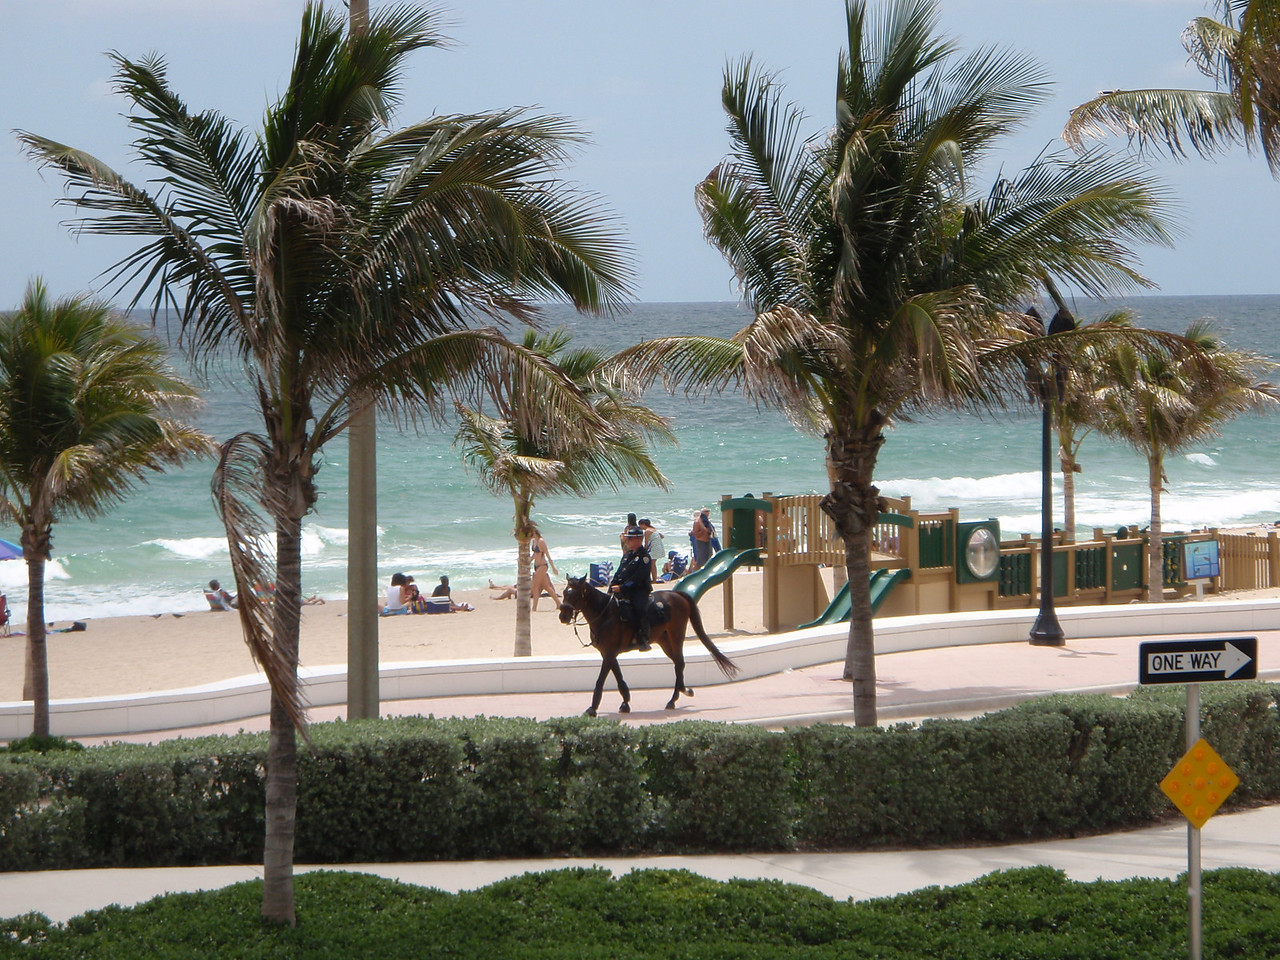 I took this shot of a Fort Lauderdale mounted policeman on patrol from our lunch spot on the balcony of the restaurant.